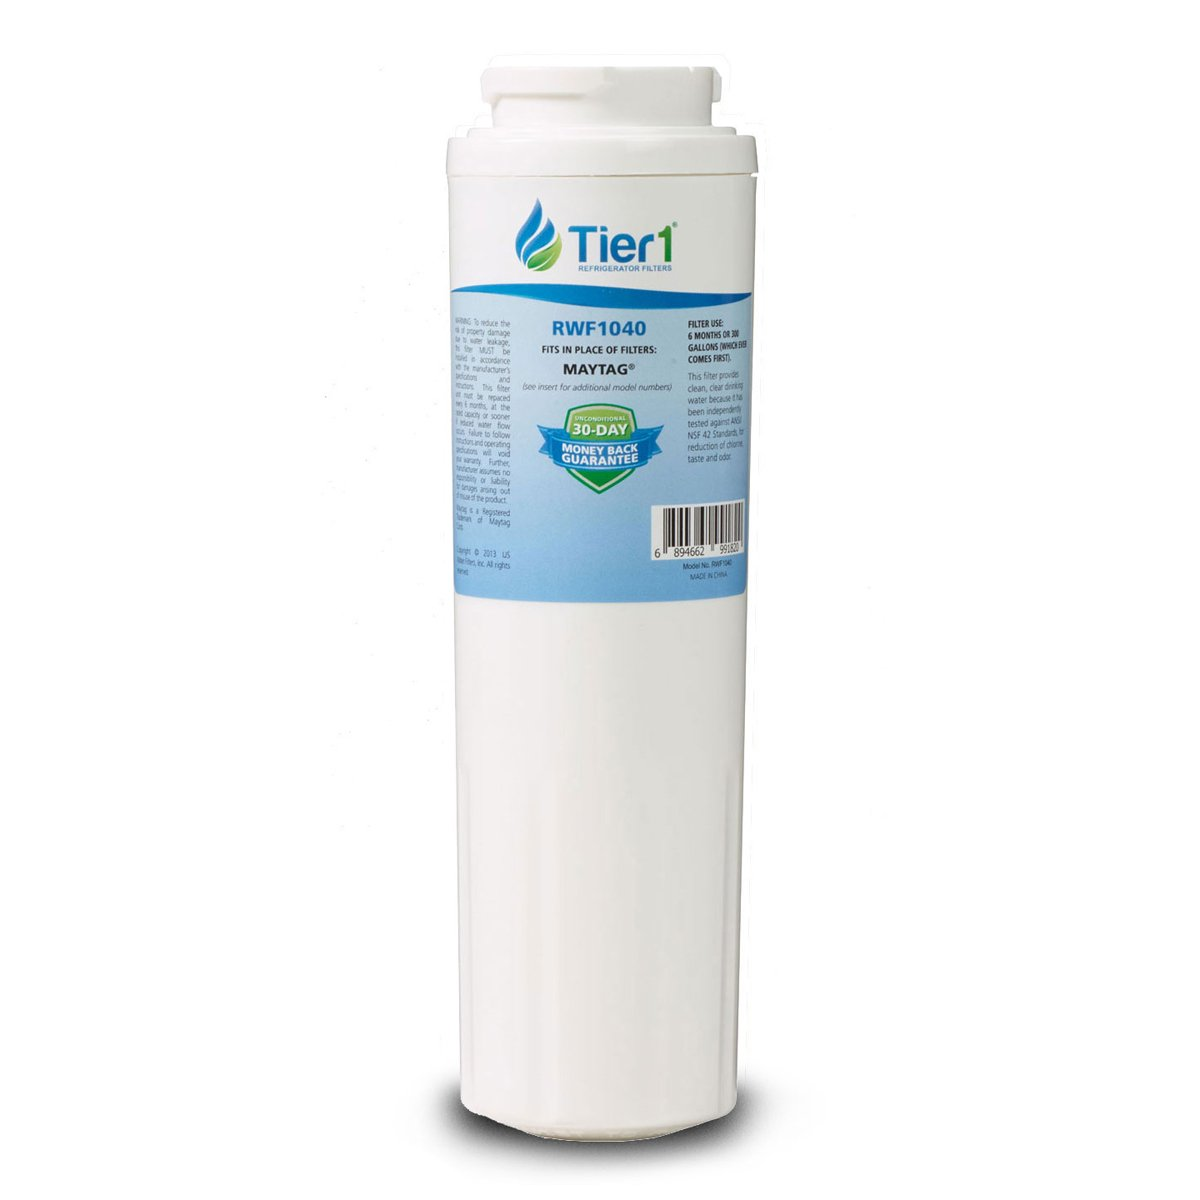 Tier1 Replacement for Maytag UKF8001, EDR4RXD1, Whirlpool 4396395, PUR, Jenn-Air, Puriclean II, 469006, 469005 Refrigerator Water Filter